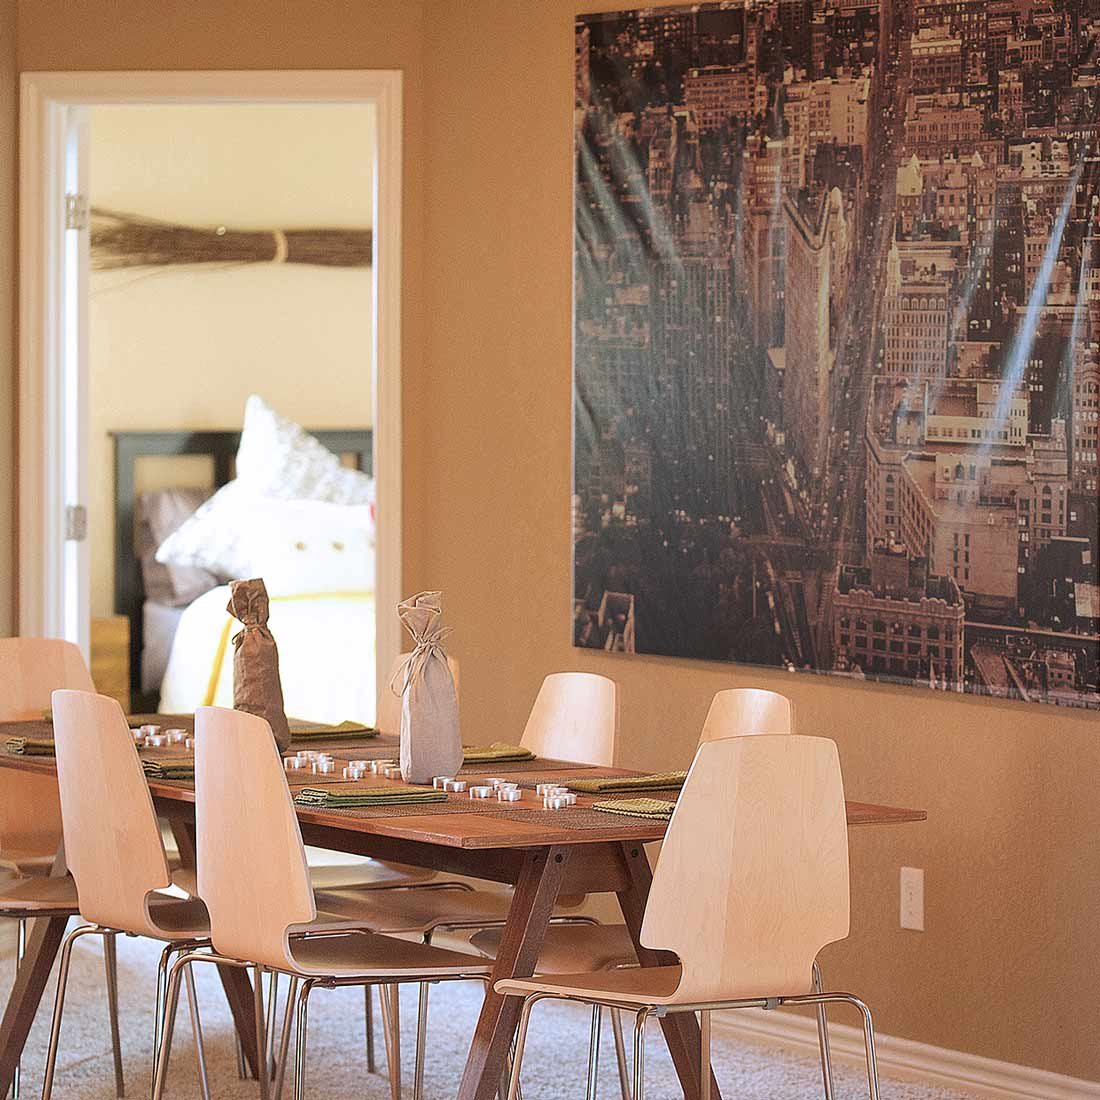 Dining Room Table, Model Home Staging